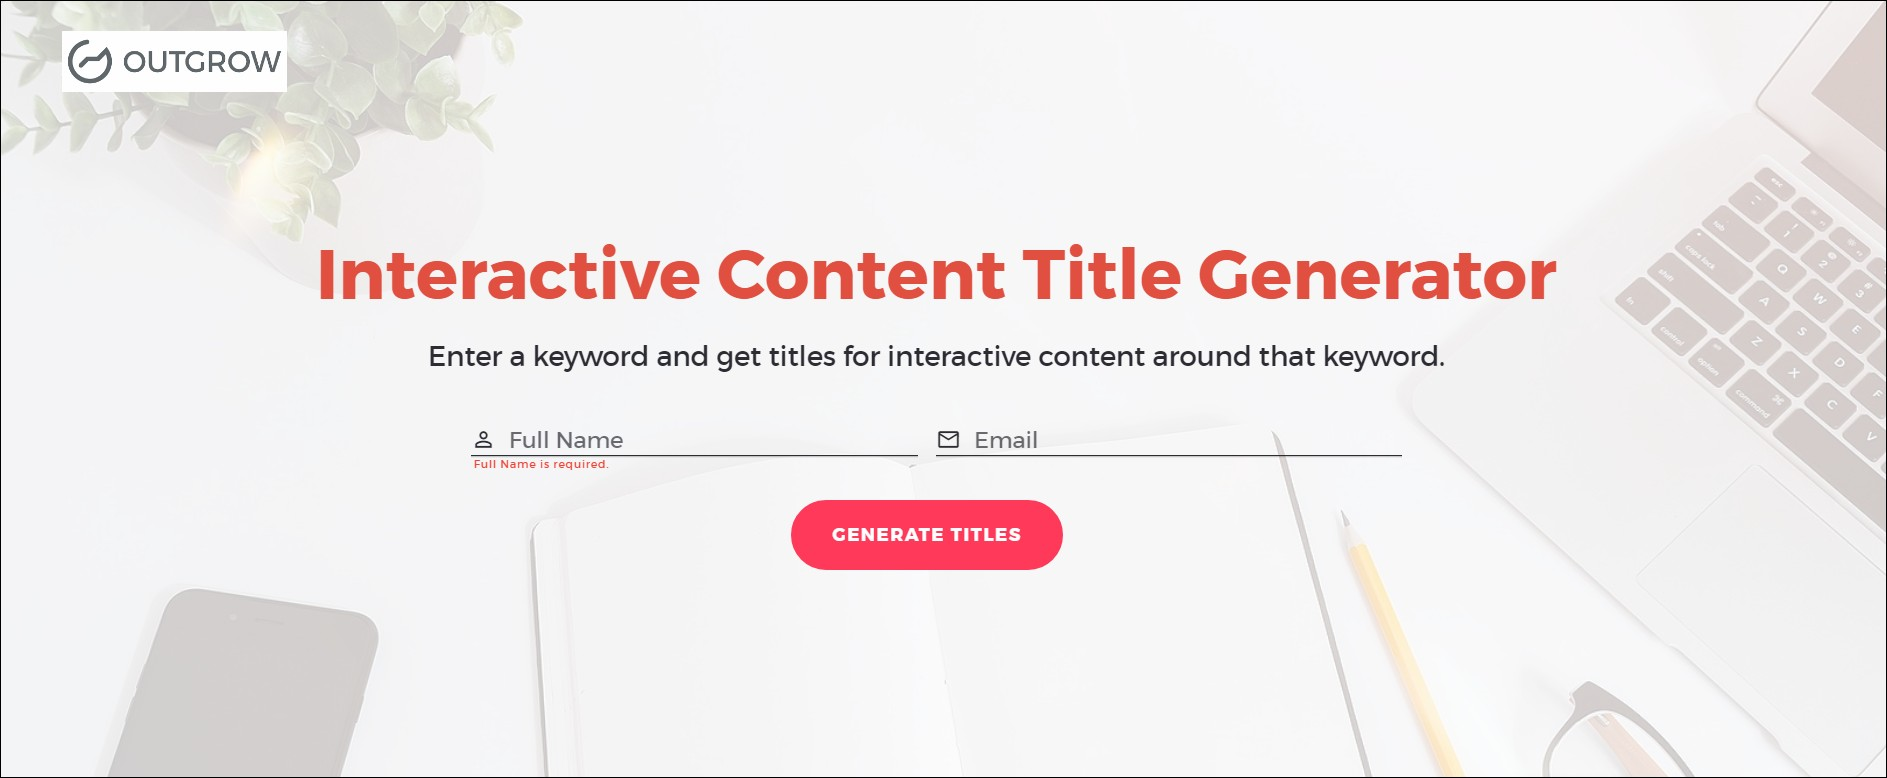 Using Interactive Content To Earn Money (+9 Use Cases)